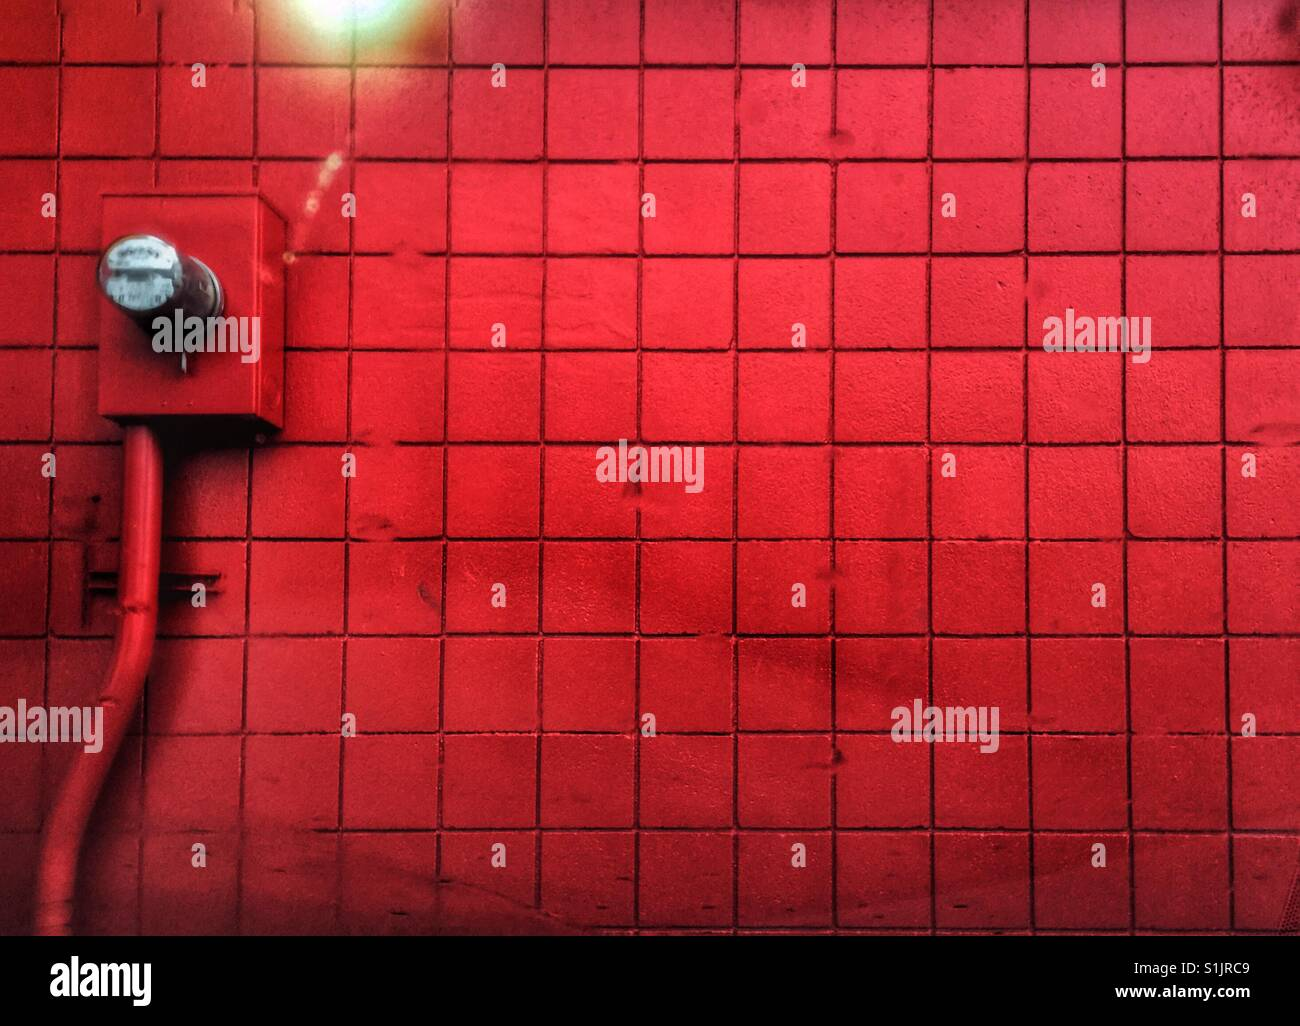 Red wall with electric meter - Stock Image